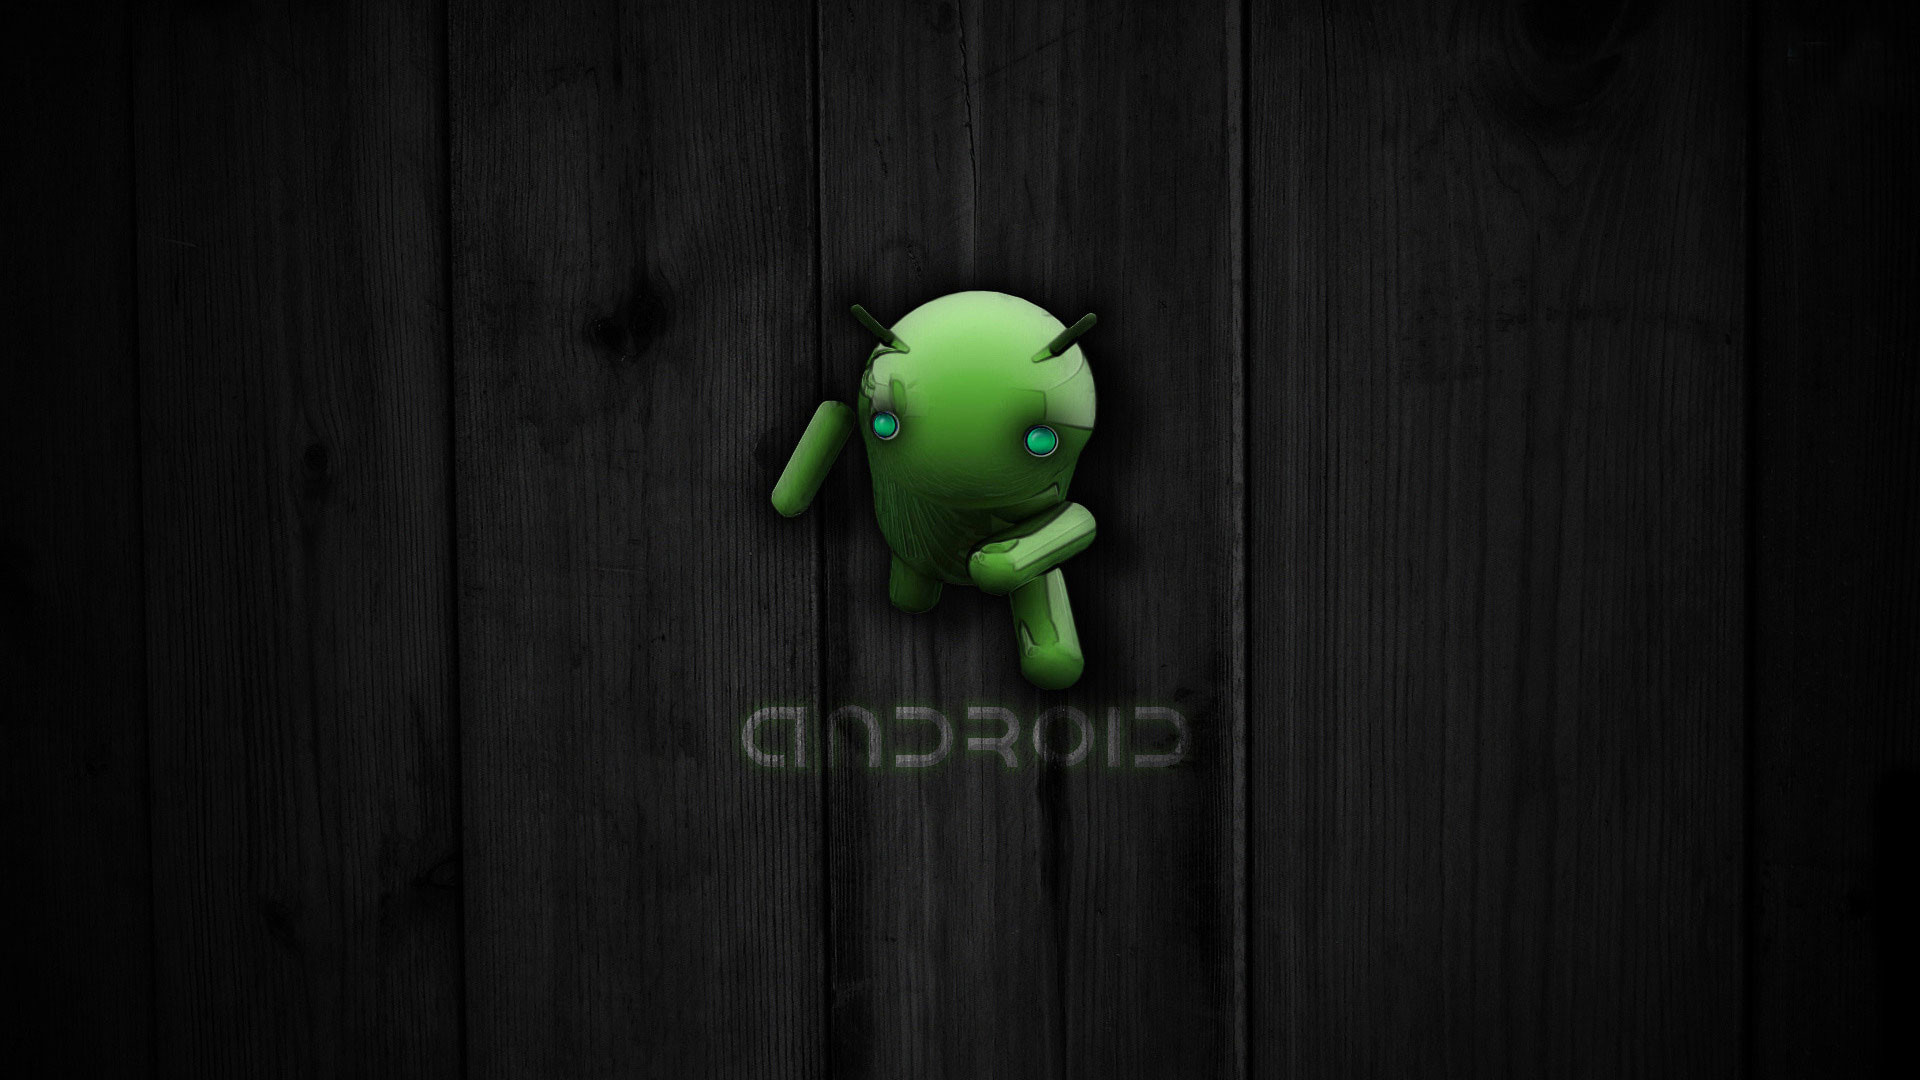 Android Robot Hd Wallpapers 76 Images